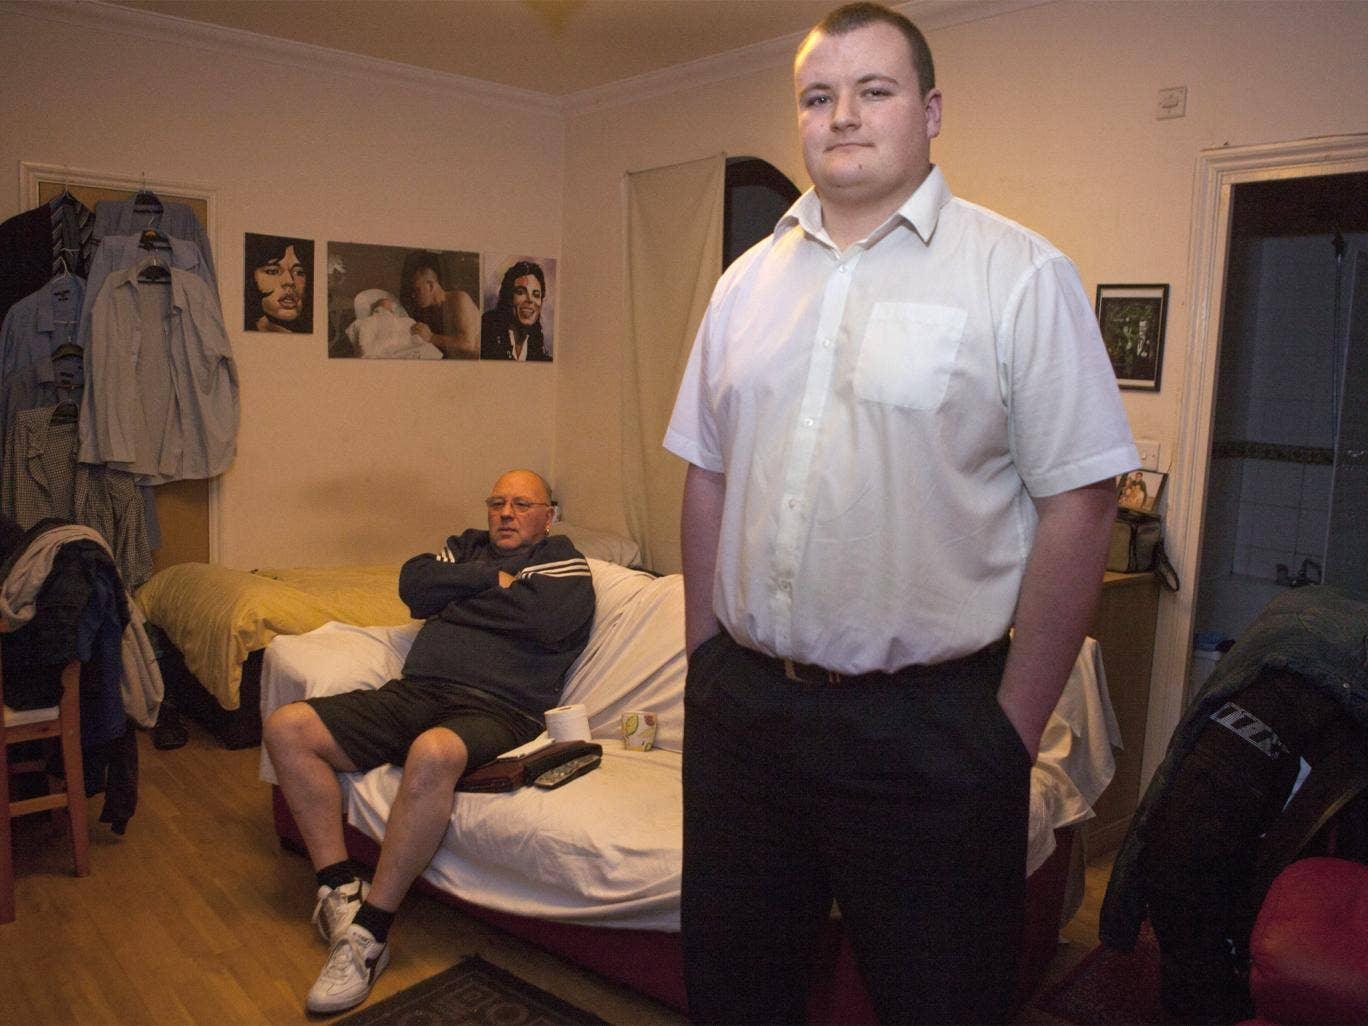 Danny Cousins, 21, and his 66-year-old father, Mick, are sharing a one-bed flat in Luton while Danny saves for a house